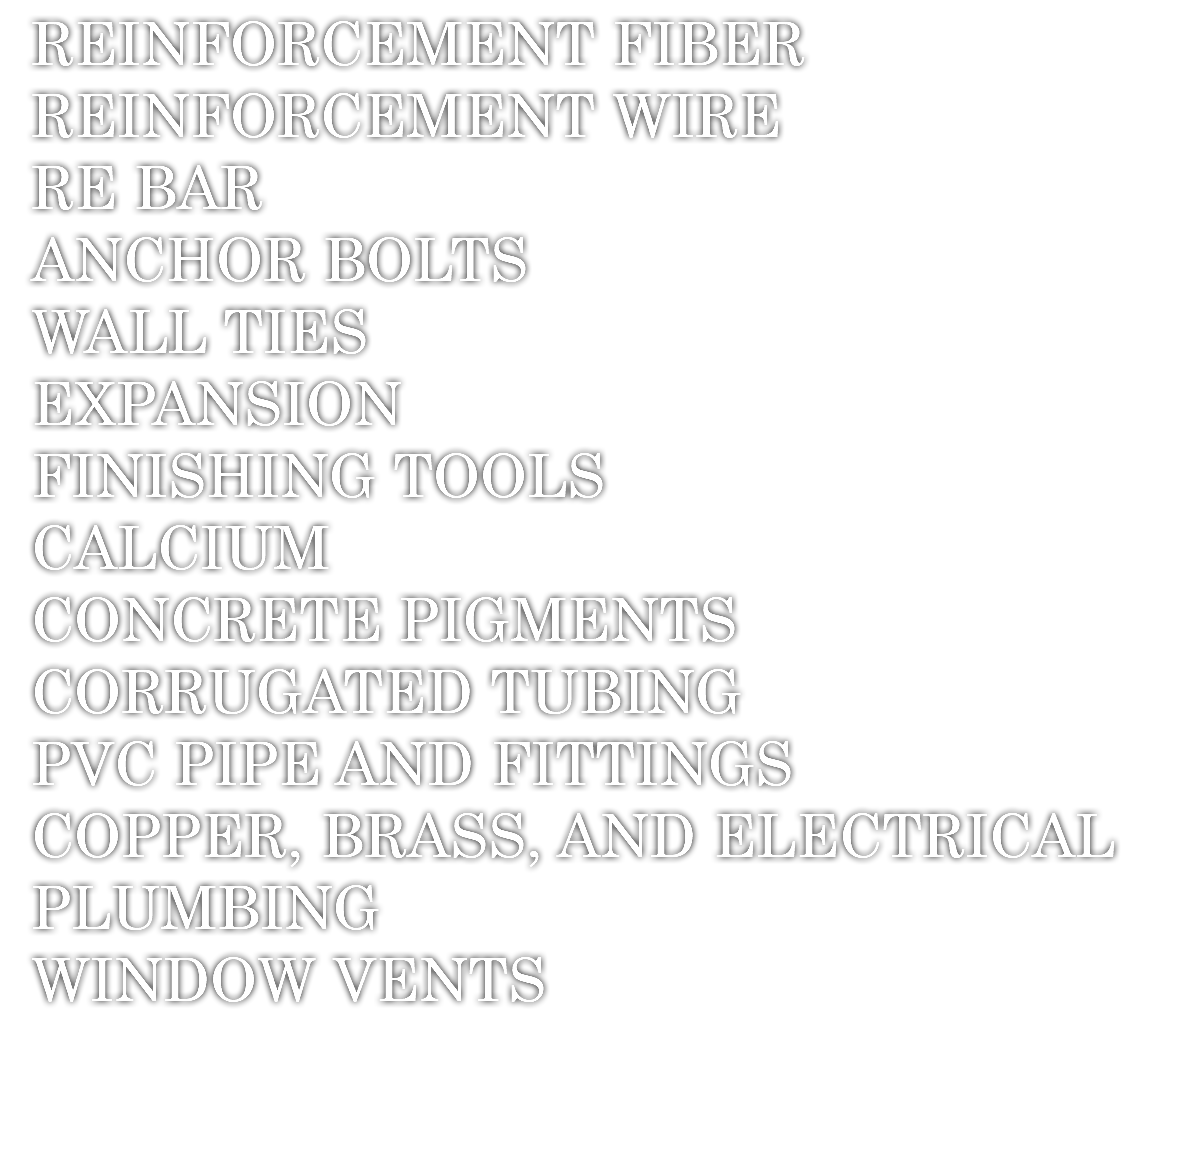 REINFORCEMENT FIBER REINFORCEMENT WIRE RE BAR ANCHOR BOLTS WALL TIES EXPANSION FINISHING TOOLS CALCIUM CONCRETE PIGMENTS CORRUGATED TUBING PVC PIPE AND FITTINGS COPPER, BRASS, AND ELECTRICAL PLUMBING WINDOW VENTS